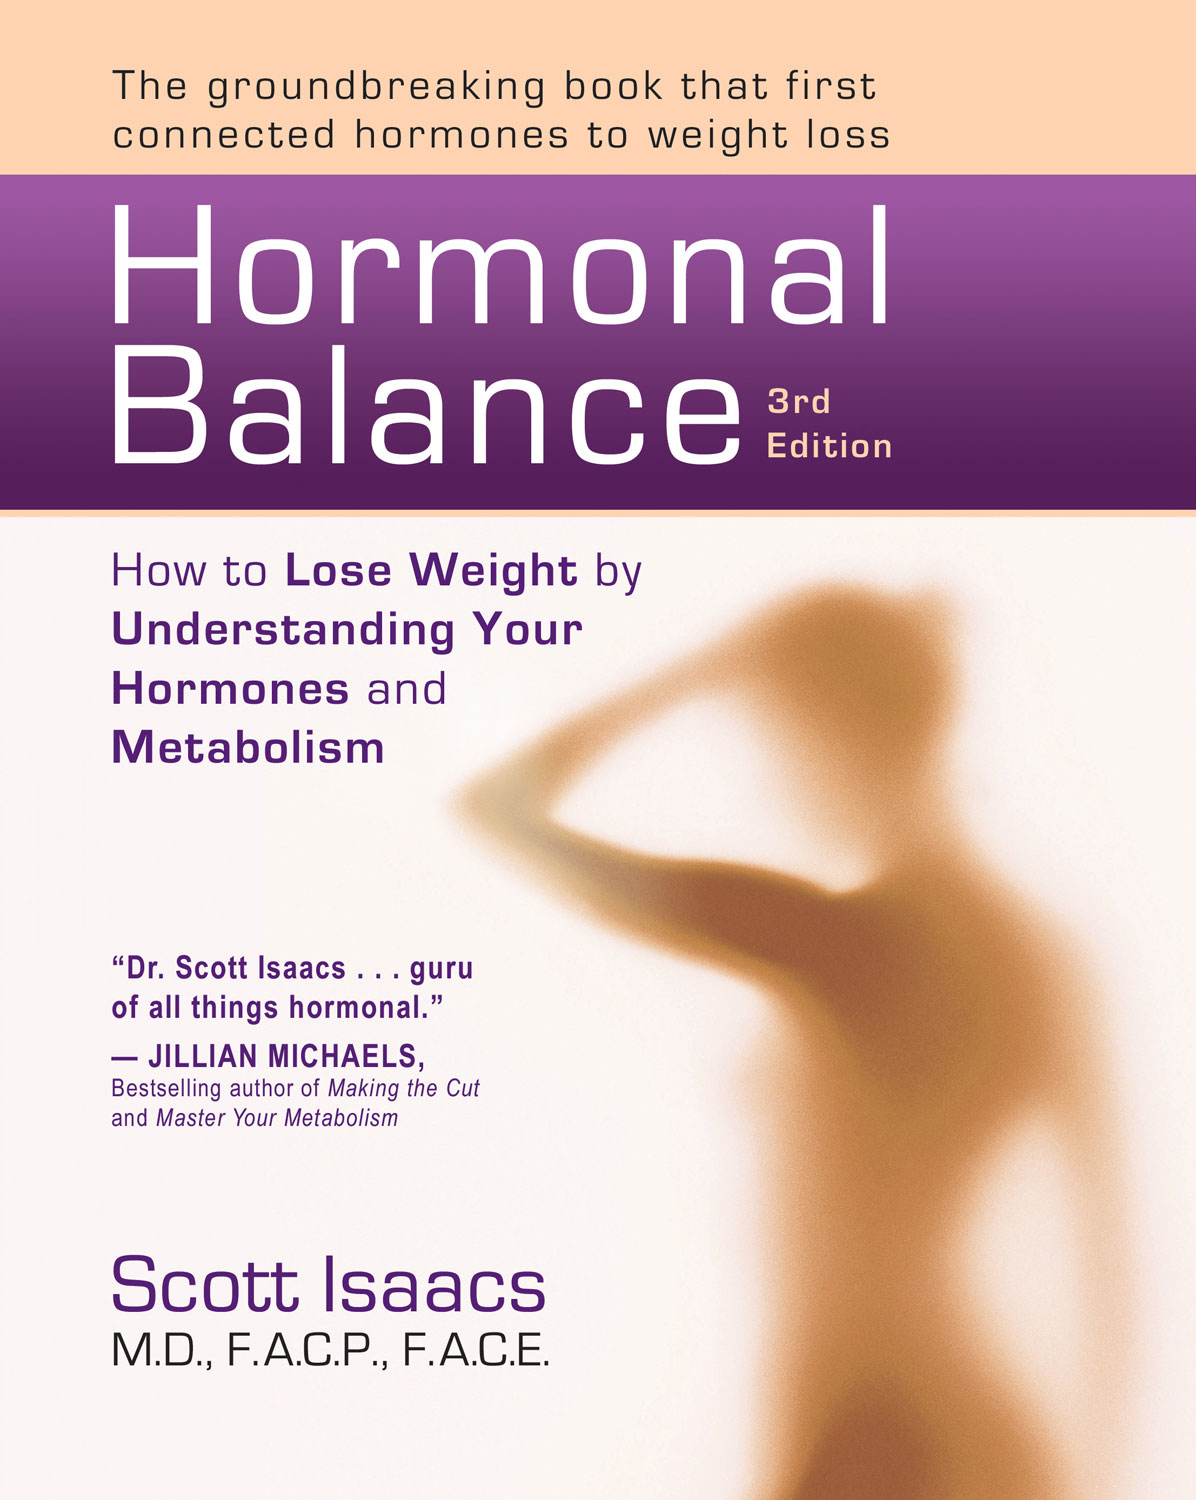 Hormonal Balance: How to Lose Weight by Understanding Your Hormones and Metabolism By: Scott Isaacs, MD, FACP, FACE